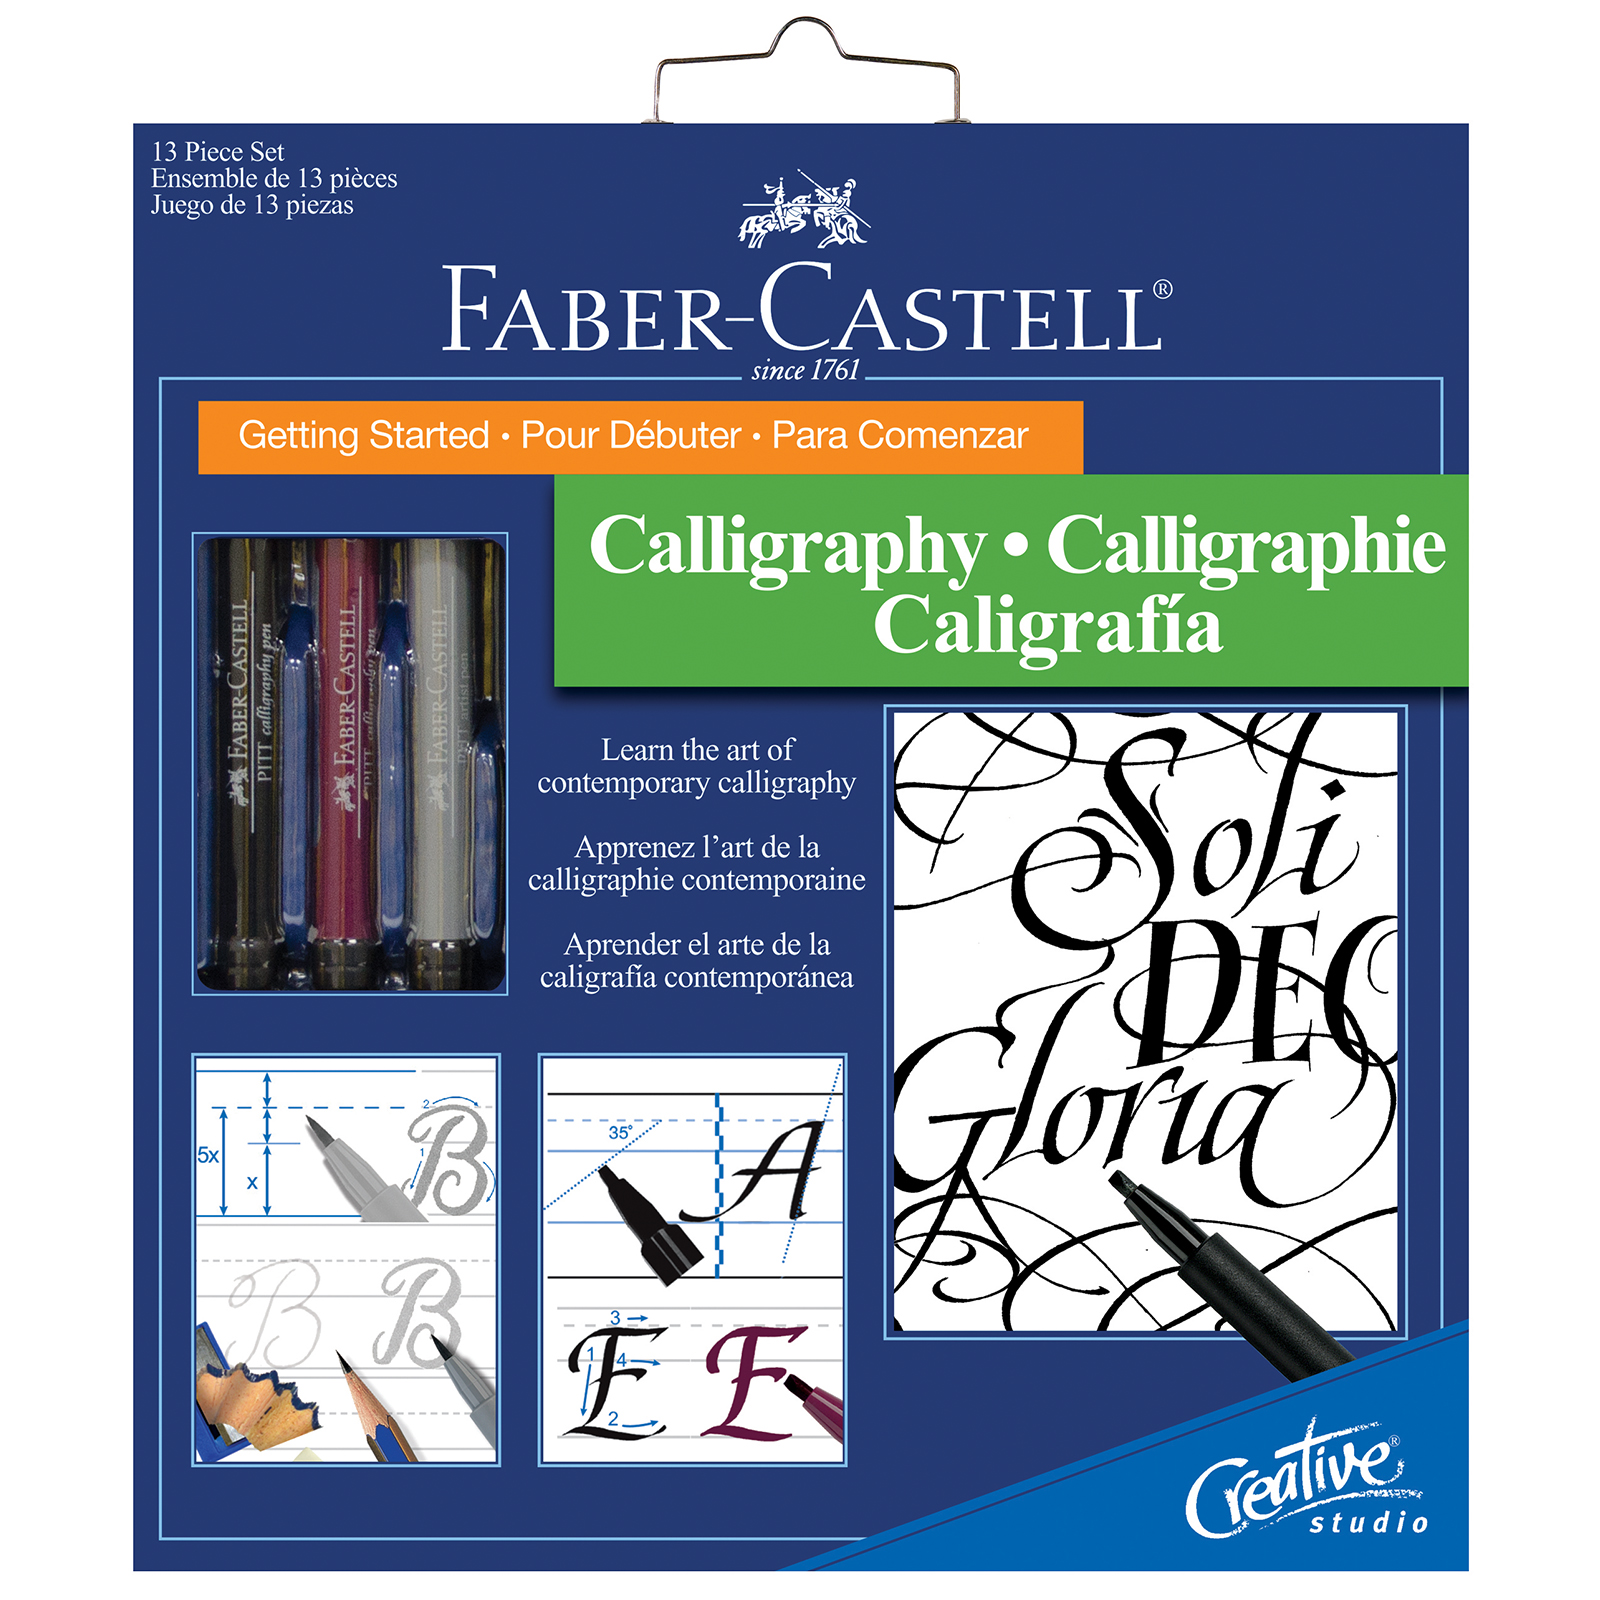 Shop for the faber castell� creative studio� getting